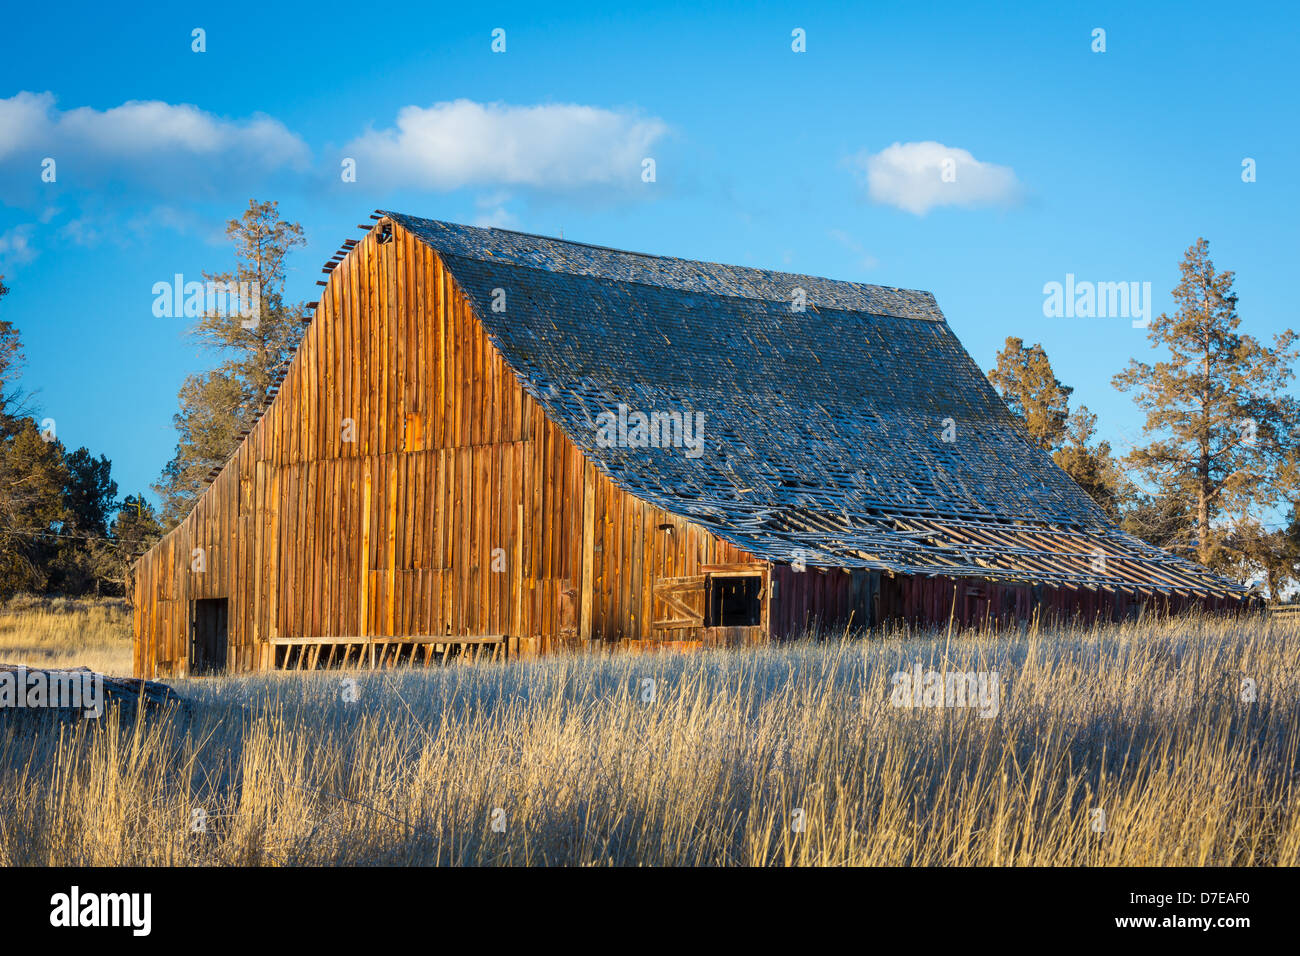 Dilapidated barn building in the Bend area of central Oregon - Stock Image